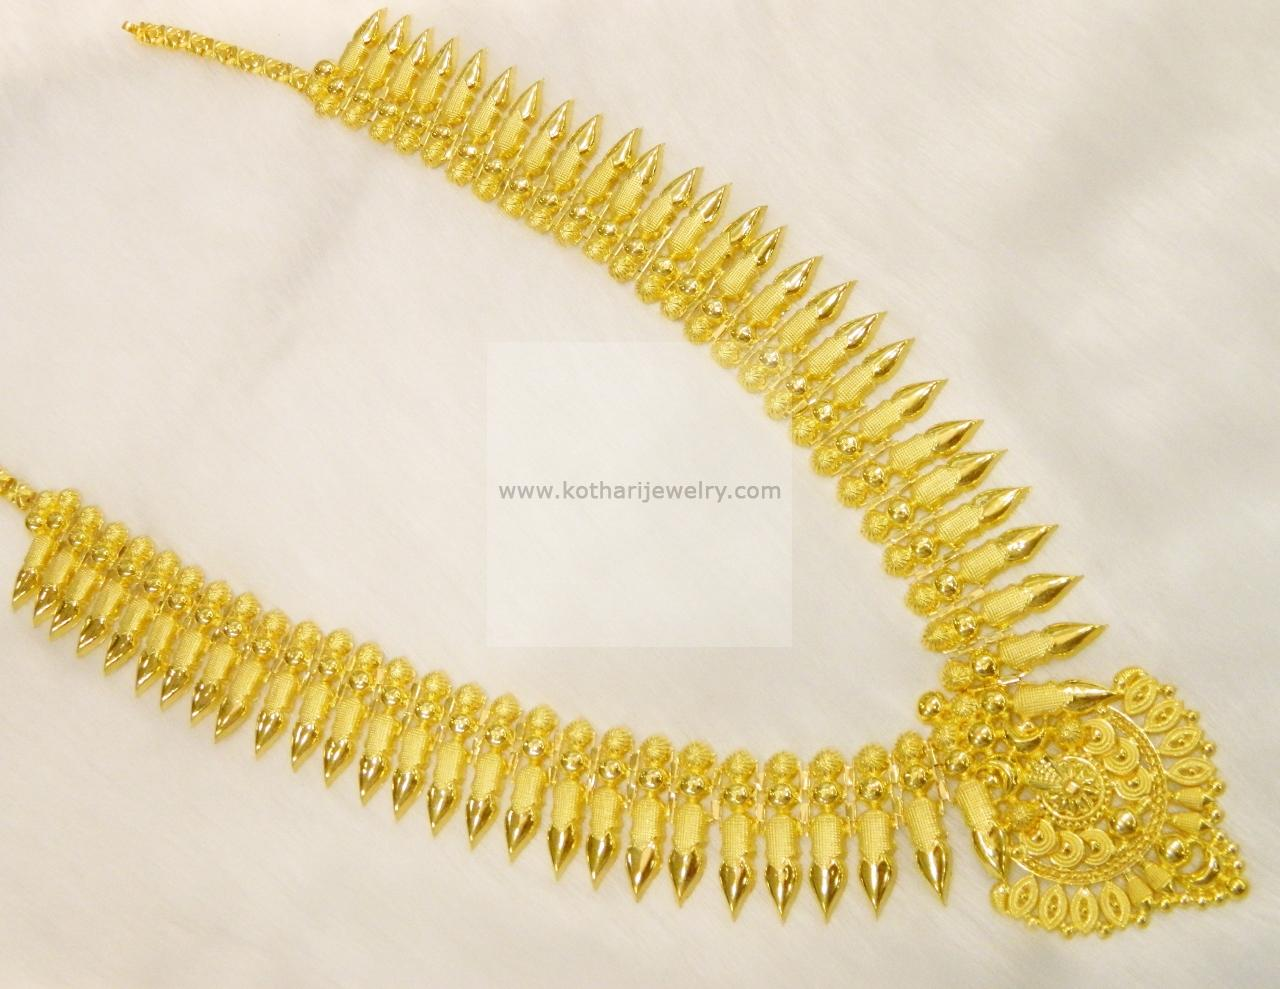 Necklaces / Harams - Gold Jewellery Necklaces / Harams (NK41274127 ...